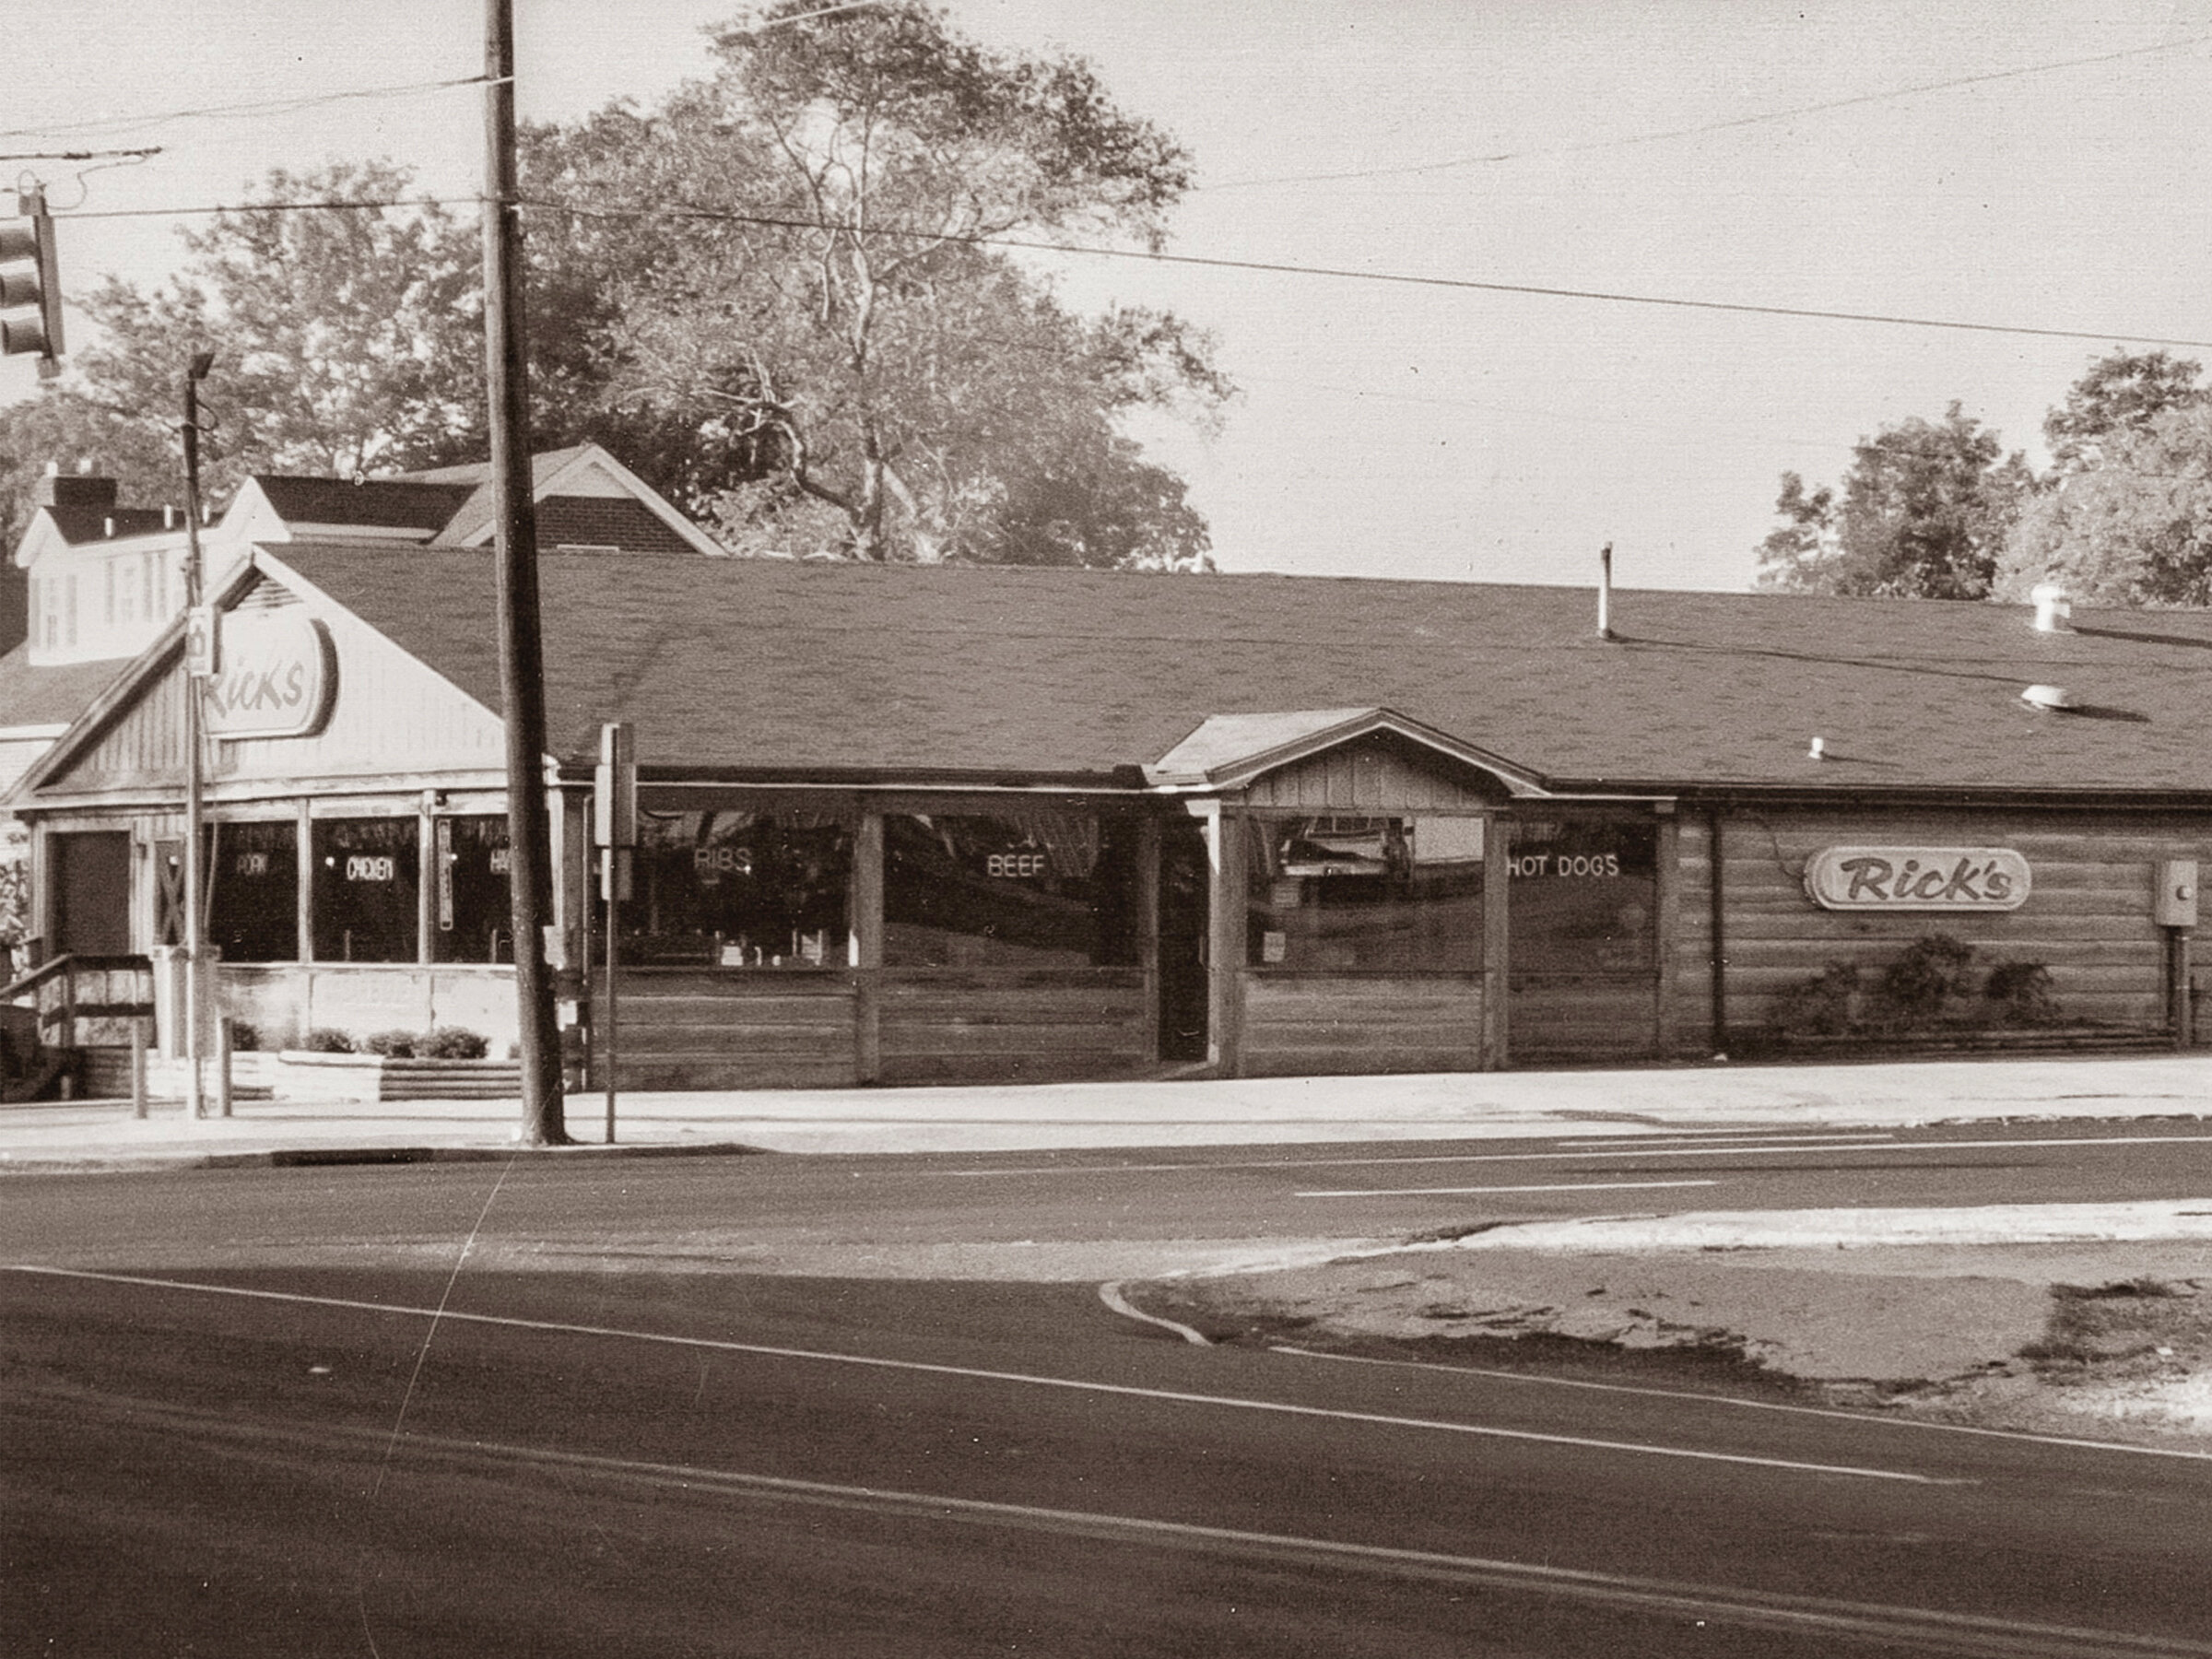 1979 - THE VERY FIRST RICK'S BARBECUE OPENED IN 1979 AT 401 WEST GAINES STREET, LAWRENCEBURG, TNTHE LOCATION ORIGINALLY OPENED AS WALK UP / DRIVE THRU LOCATION AND ONLY HAD 2 SMOKE PITS. AS YEARS PASSED, A COVER PATIO WAS ADDED AND THEN ENCLOSED TO ALLOW AN INDOOR DINING AREA